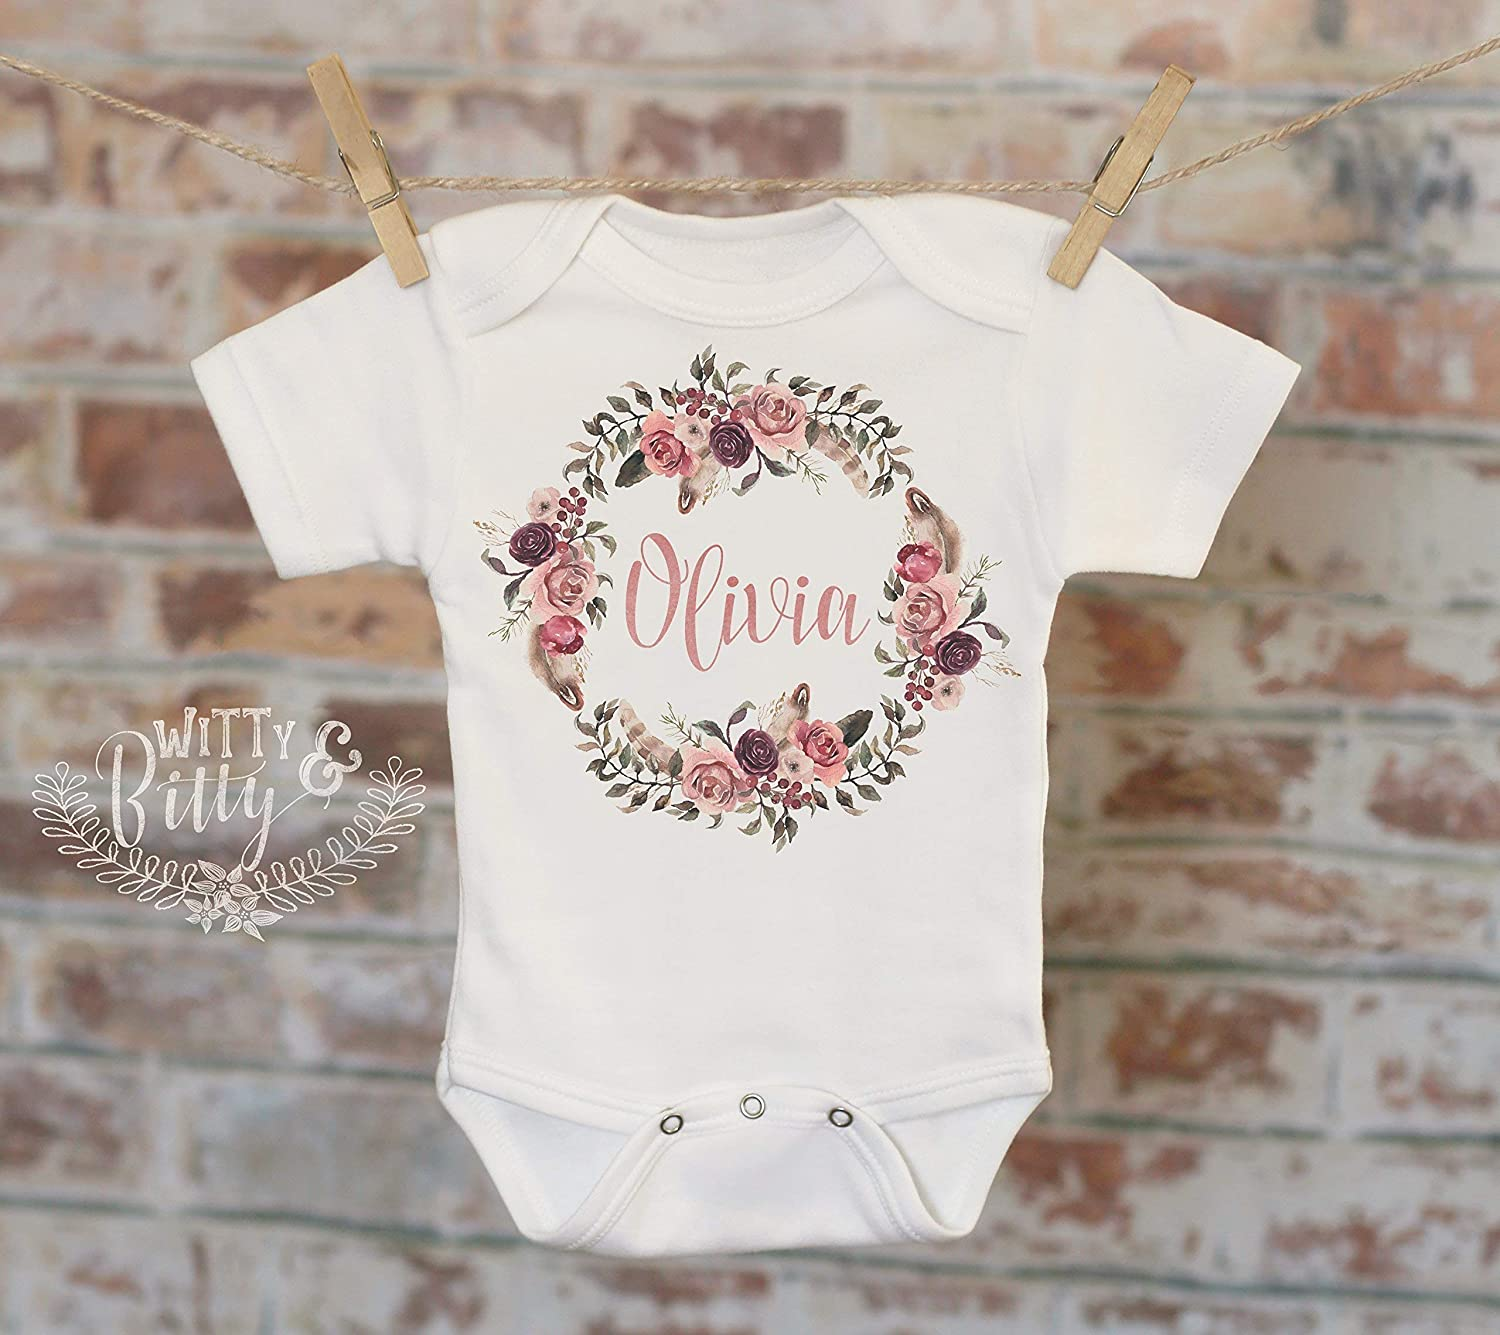 Flower Wreath Baby Name Personalized Onesie, Customized Onesie, Custom Baby Onesie, Woodland Style Onesie, Boho Baby Onesie, Girl Name Onesie